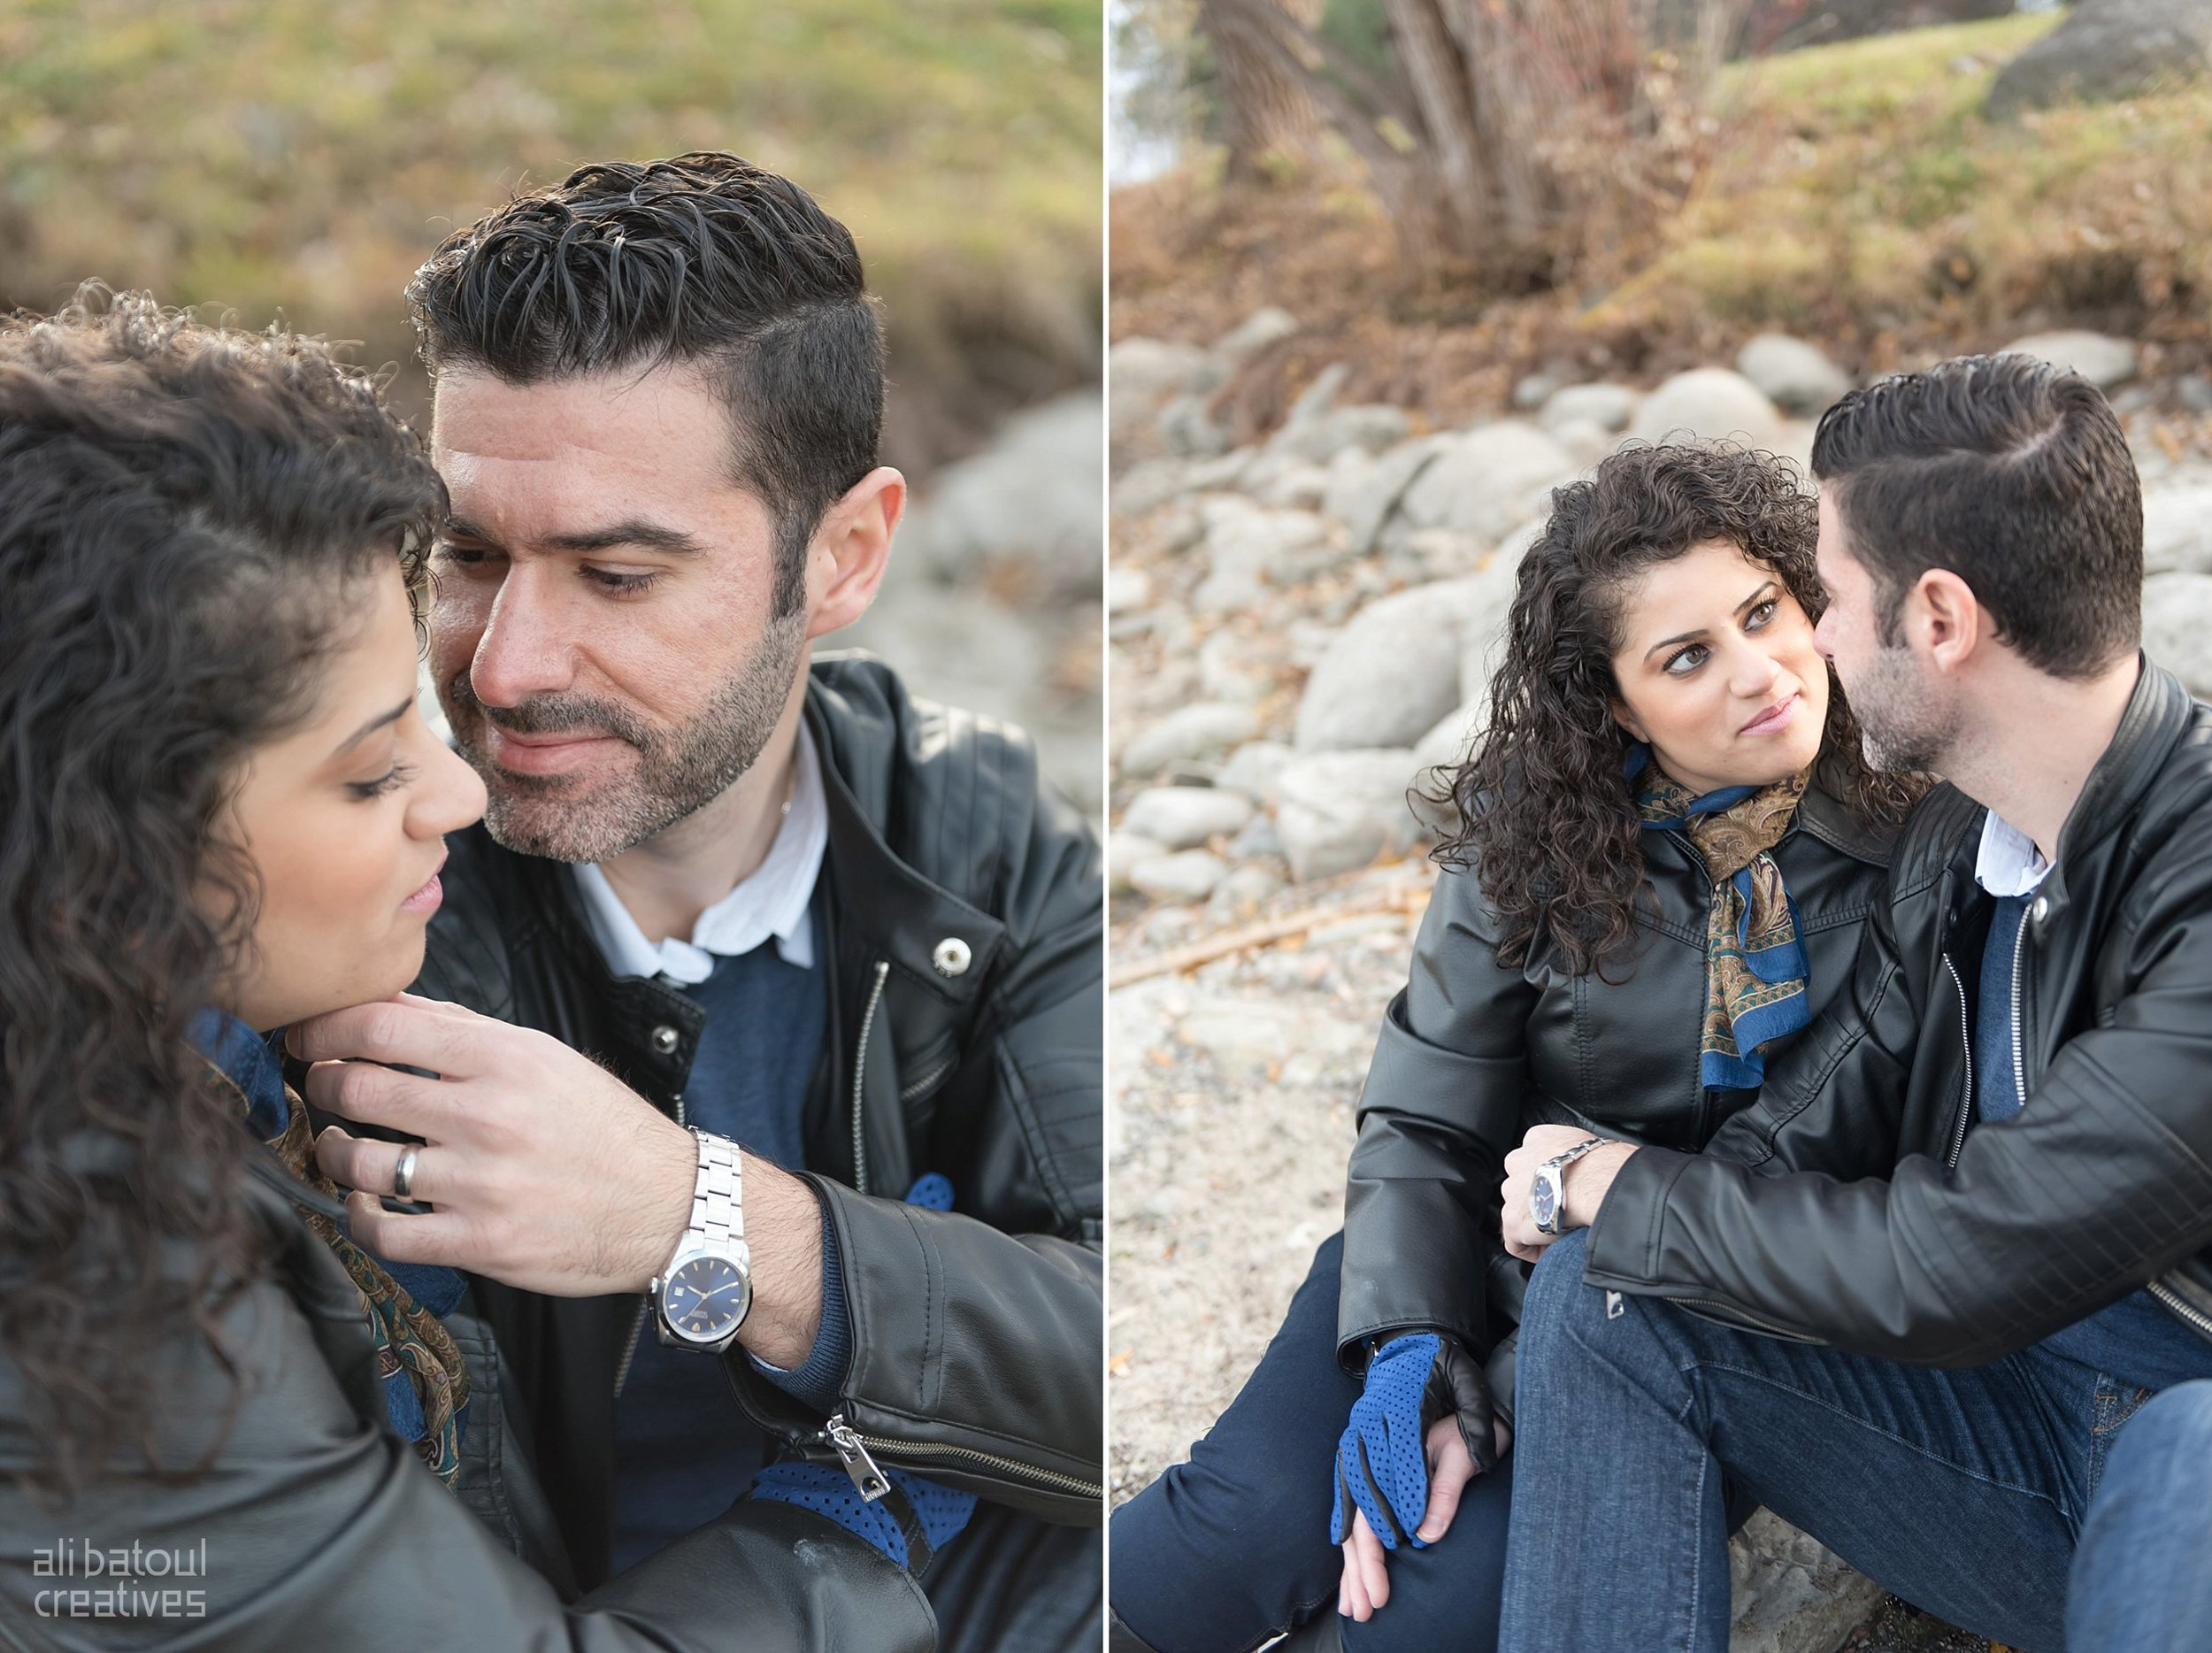 Isabelle + Arman Couples Shoot - Ali Batoul Creatives - Blog-34_Stomped.jpg